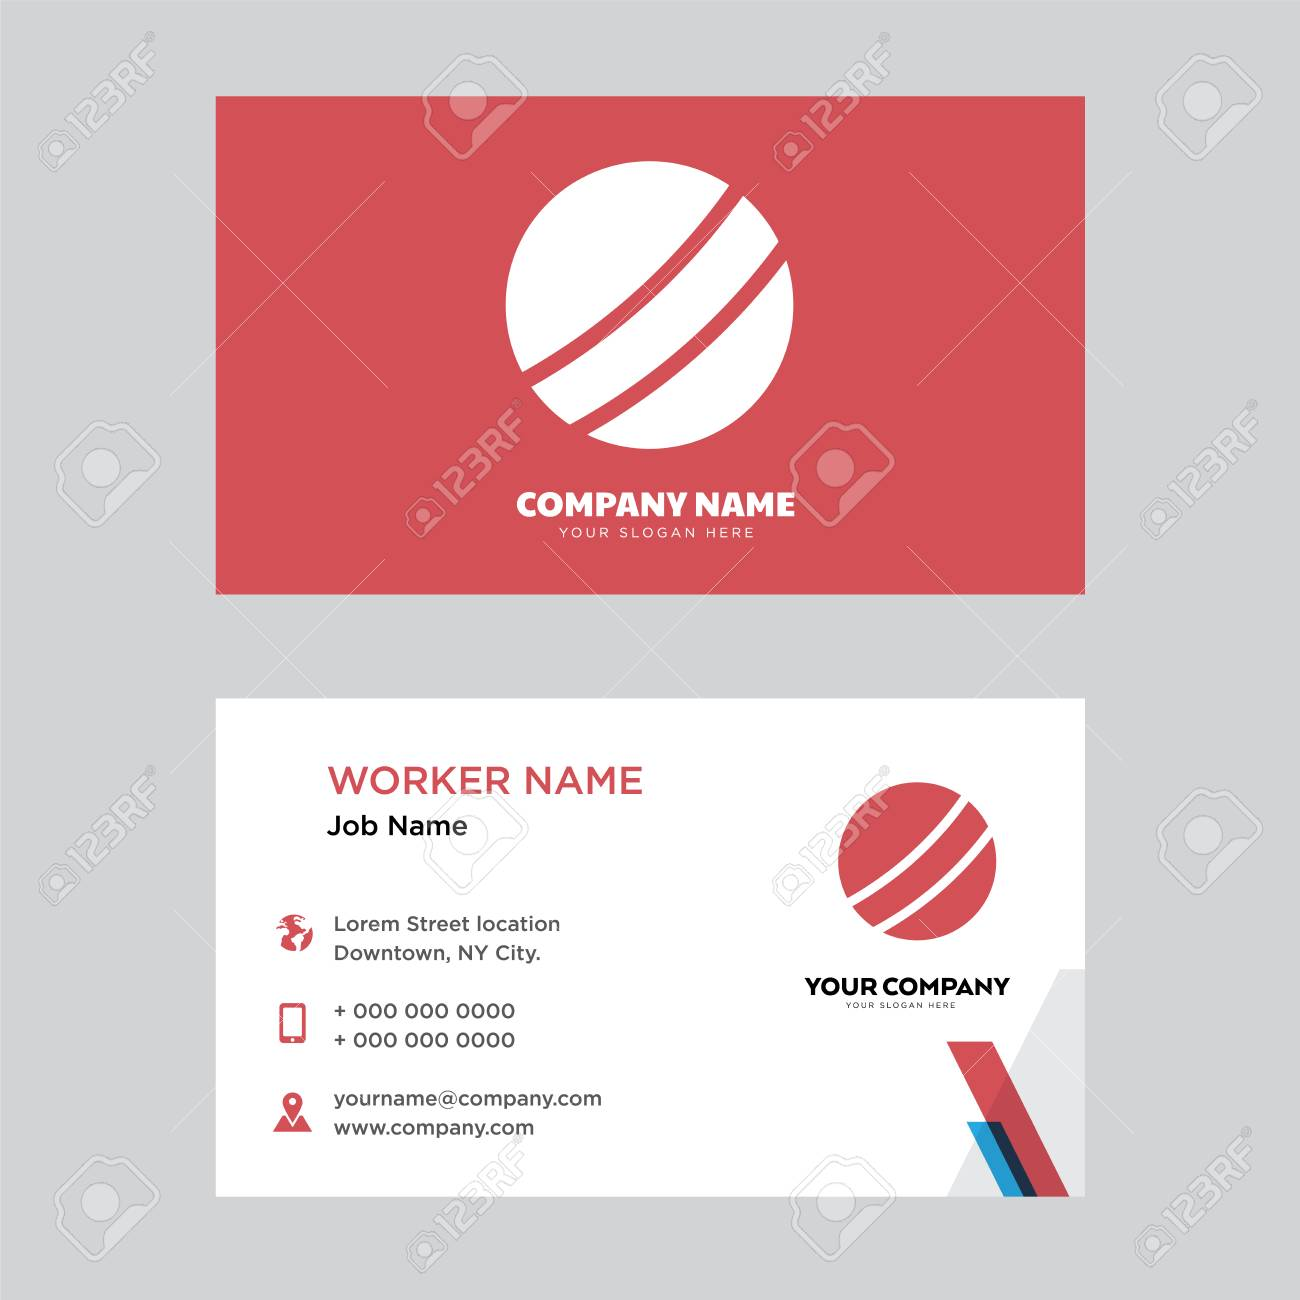 Basketball Business Card Design Template, Visiting For Your Company ...